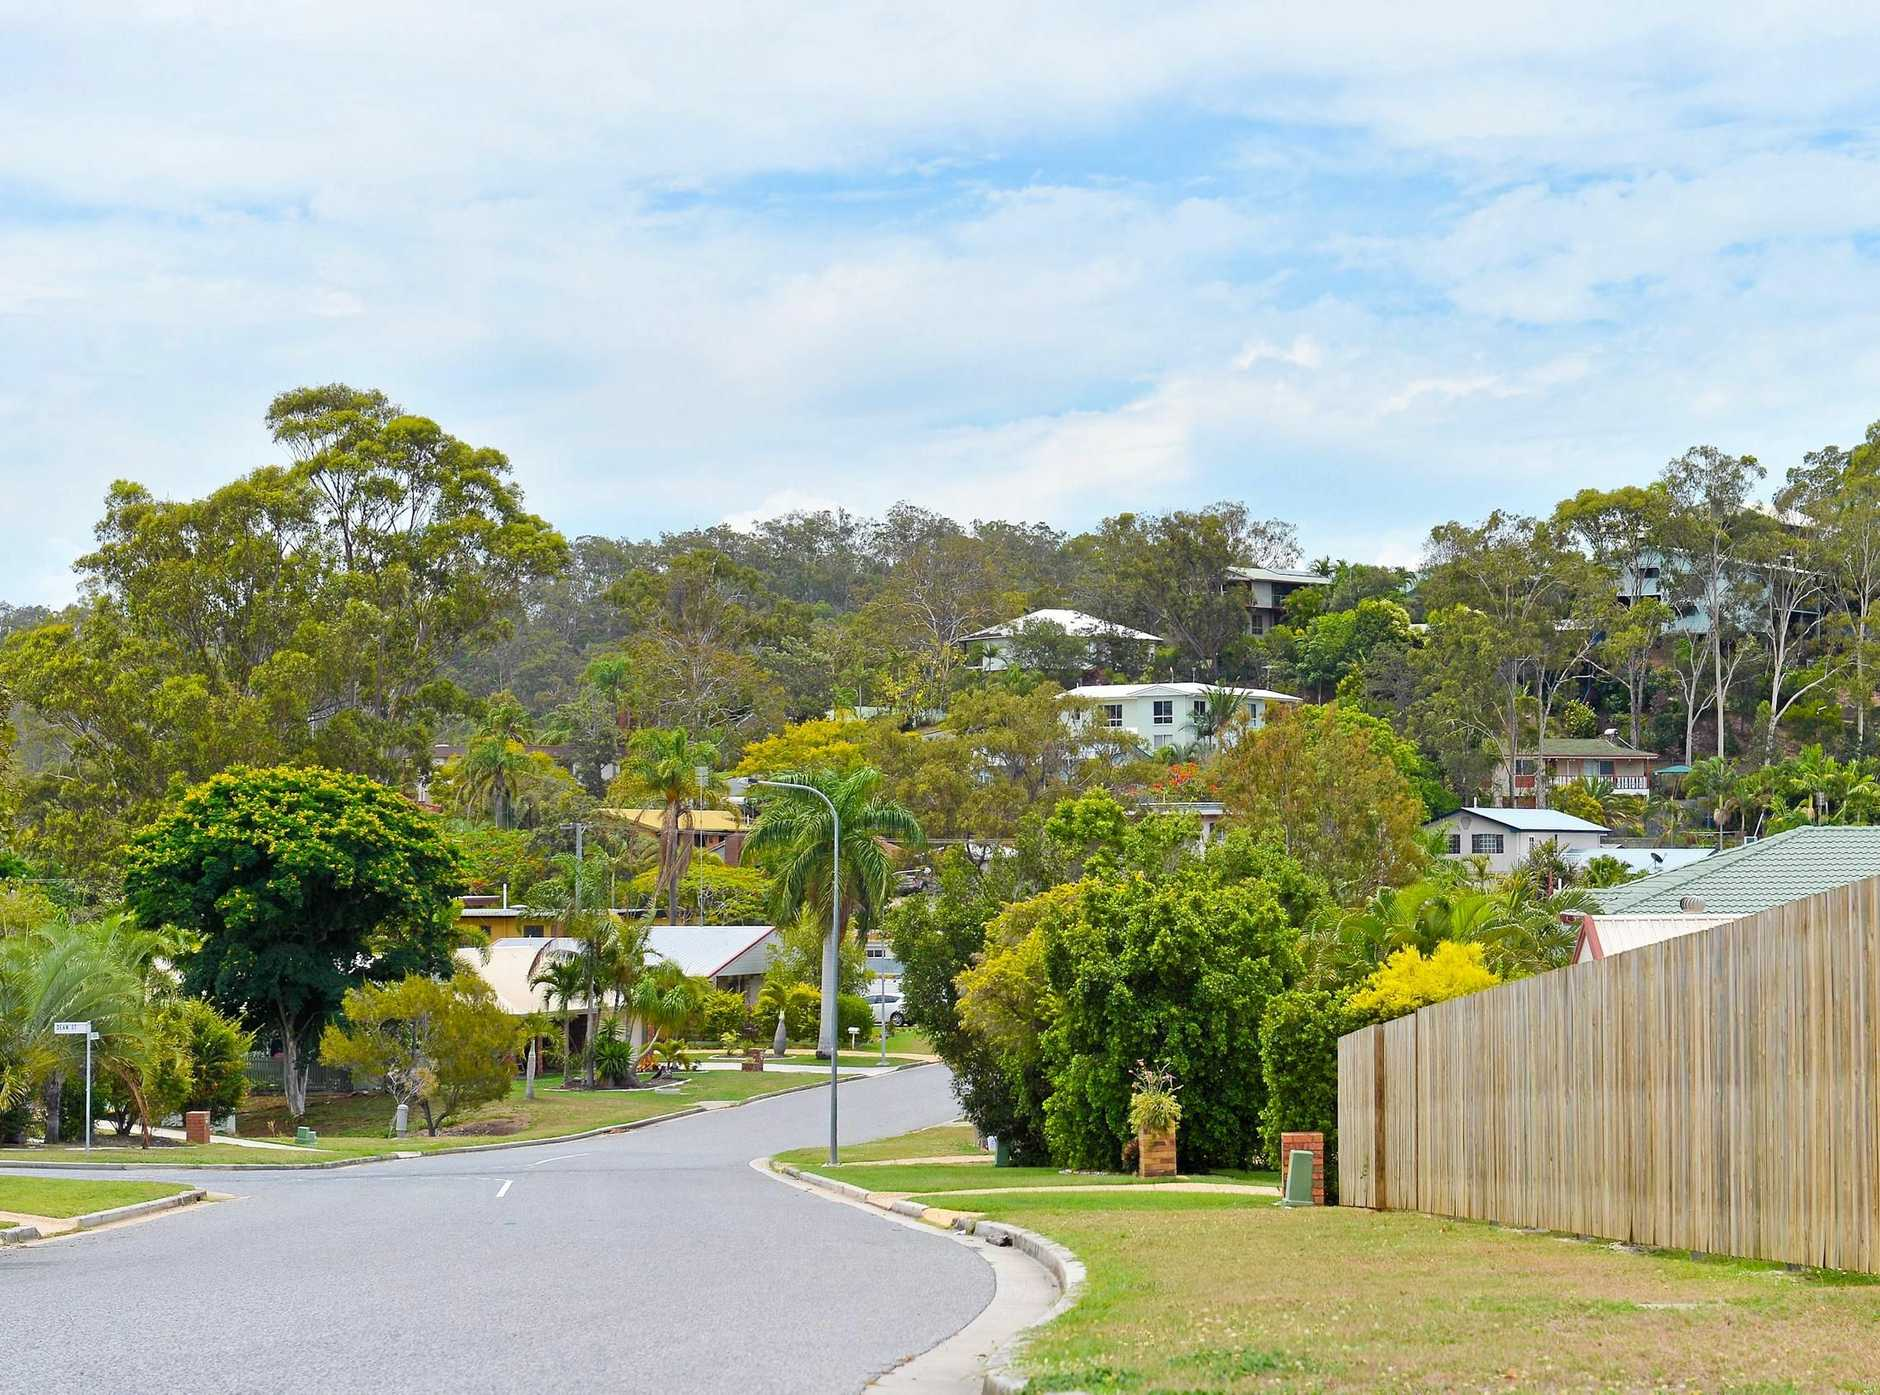 ON THE UP: Gladstone's property market rebound is real, says property valuer Herron Todd White.